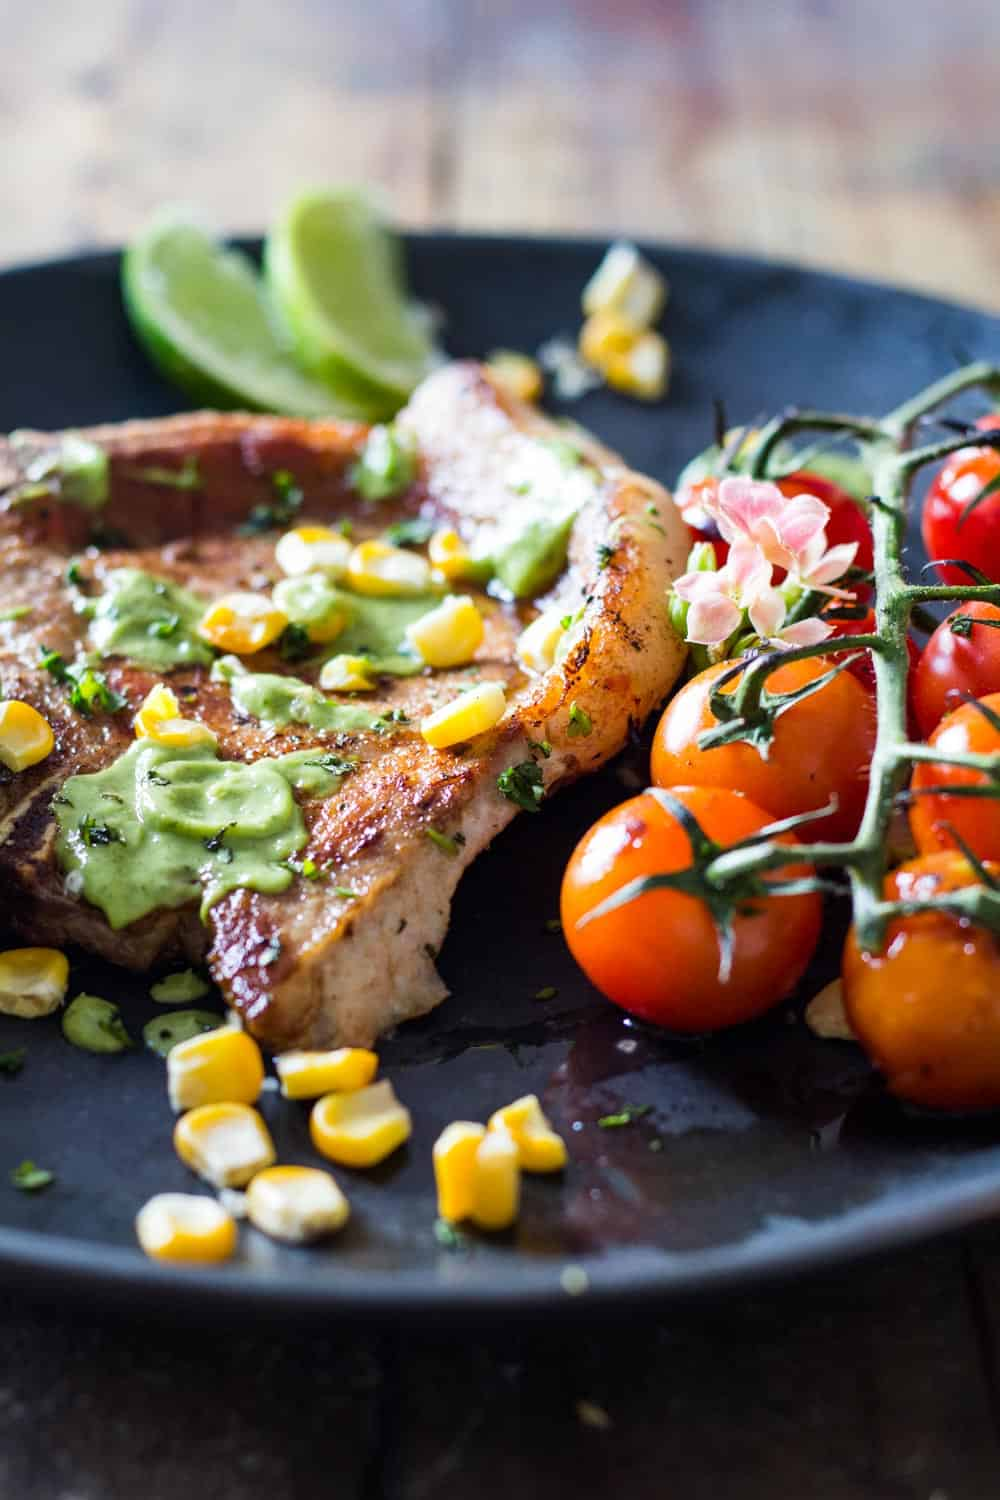 Close up of Pork Chops garnished with avocado cilantro sauce, corn kernels, and cherry tomatoes, to show texture.